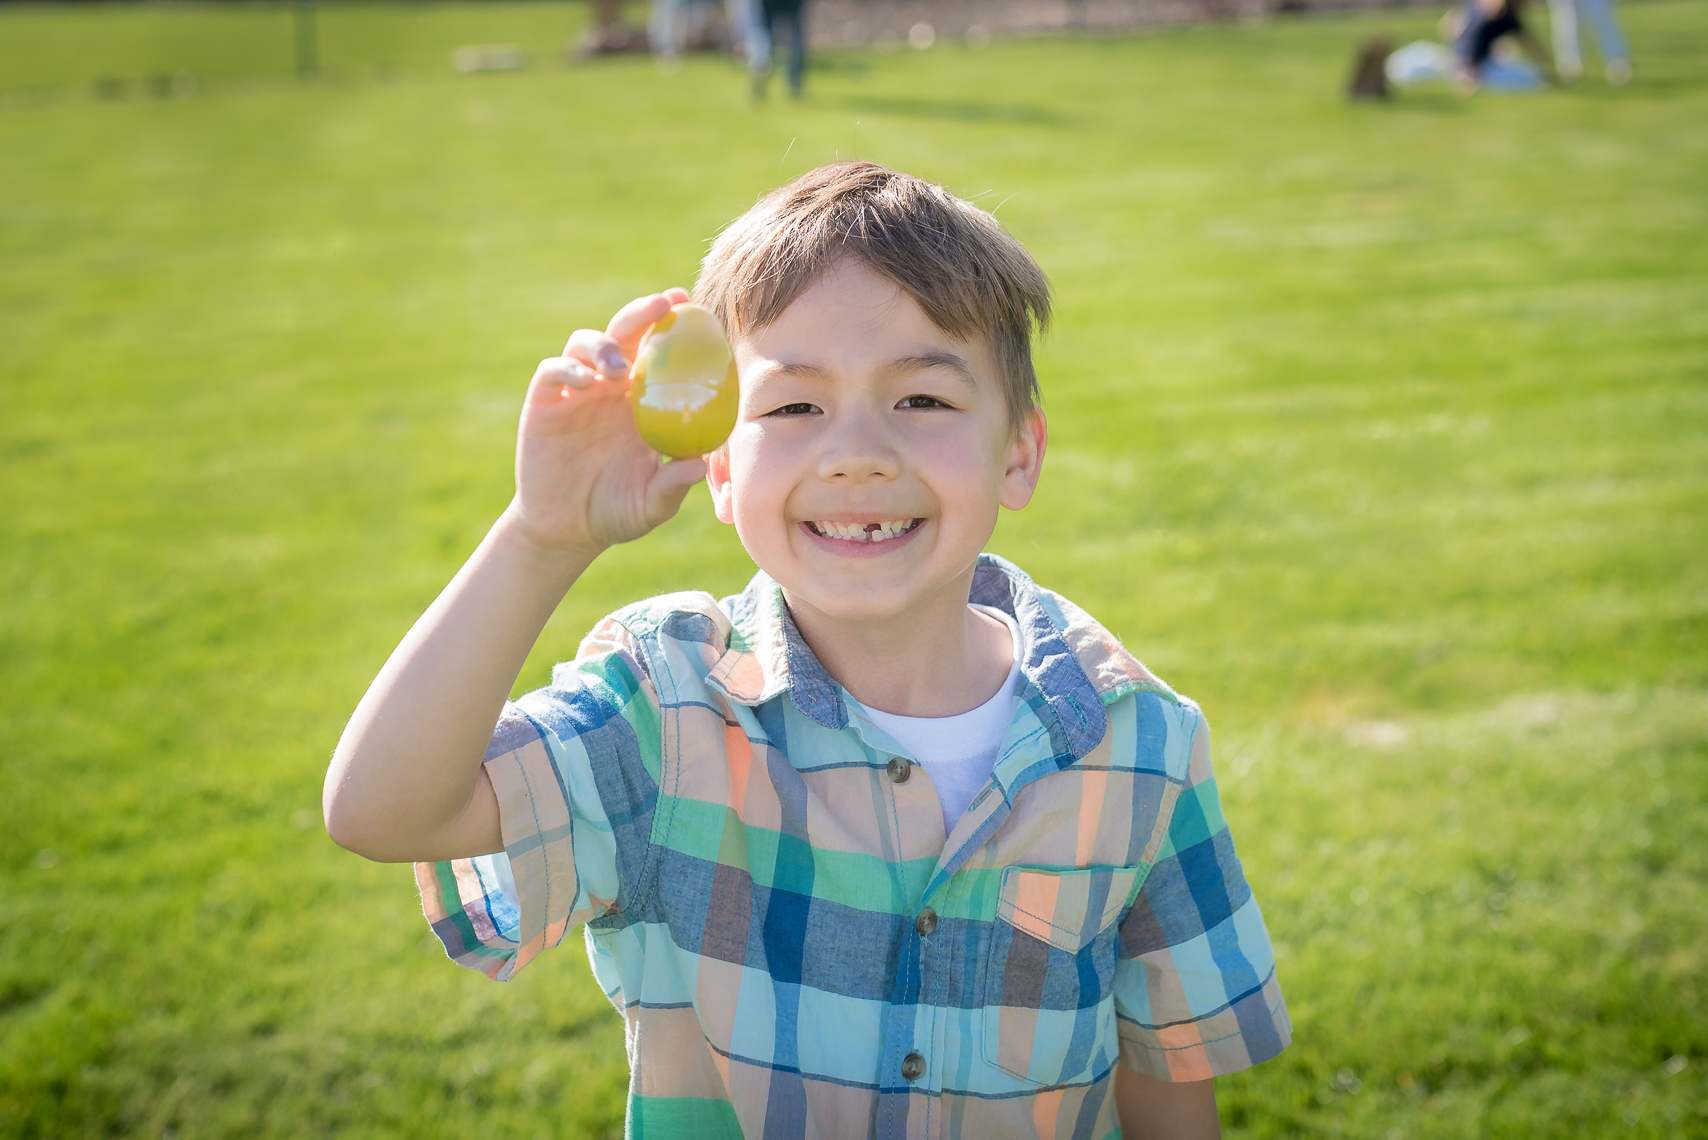 Decker thought he had found the golden egg because he found a yellow egg. Hence, the big smile.